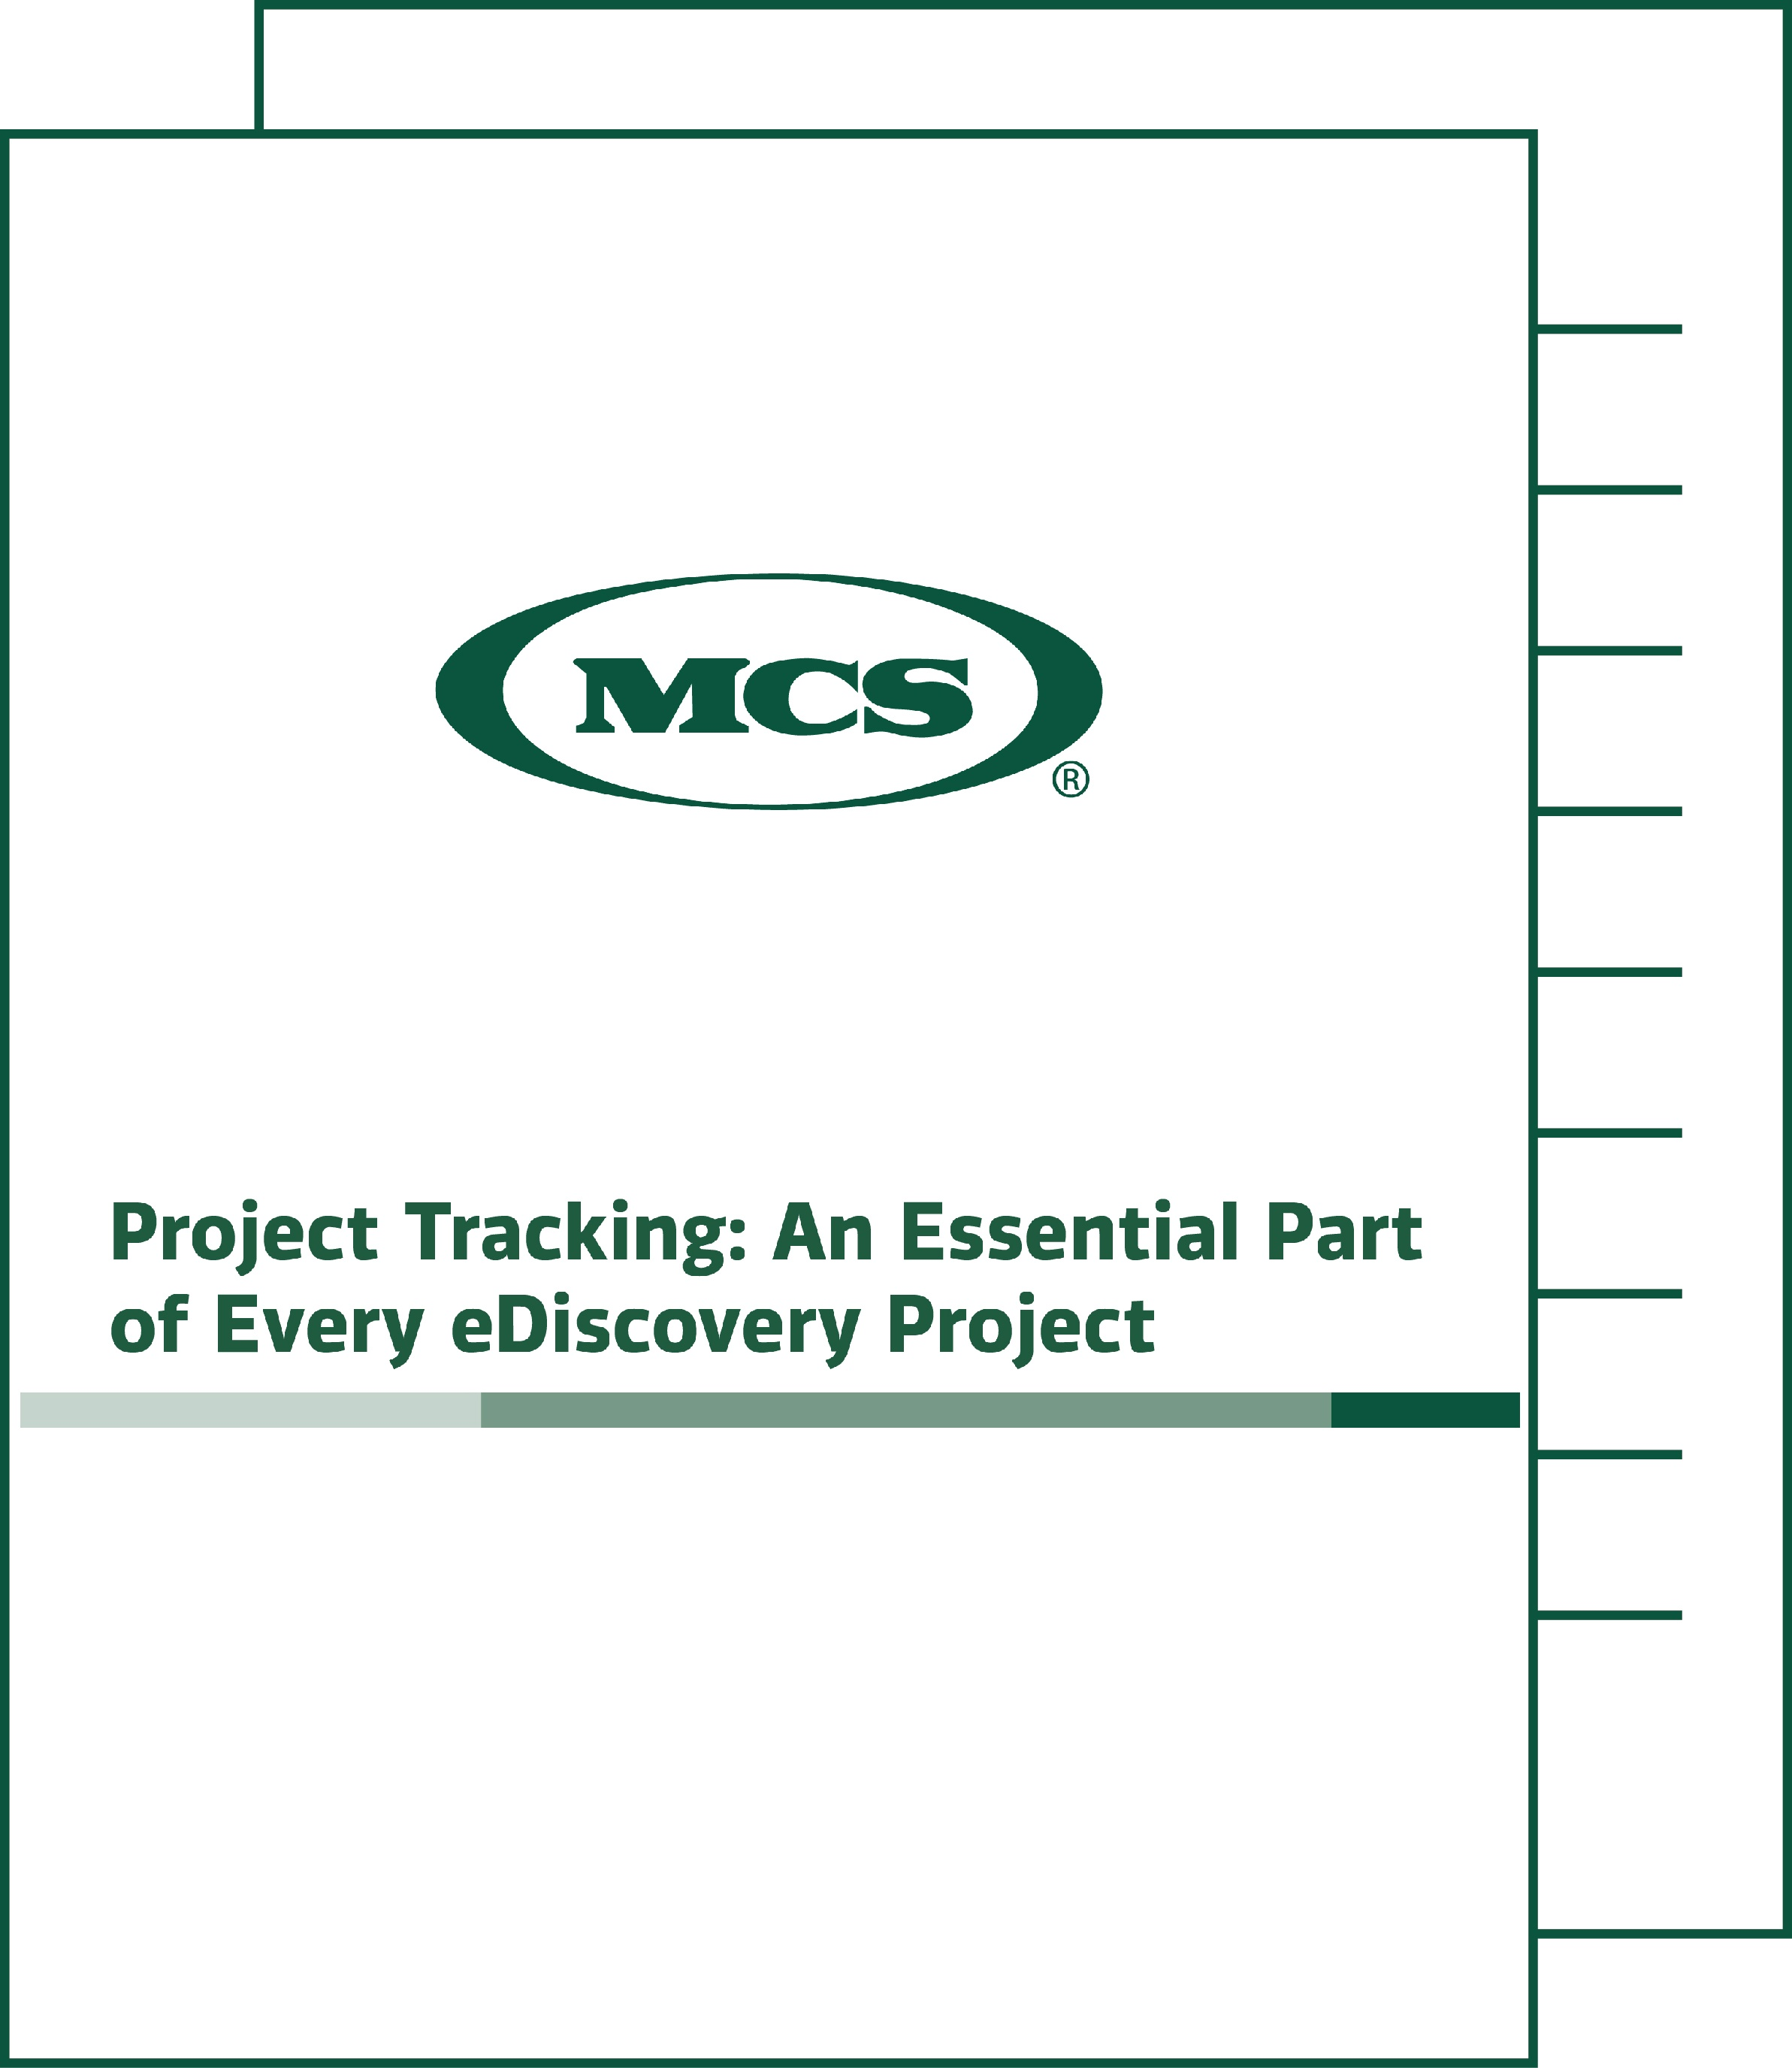 Project Tracking: An Essential Part of Every eDiscovery Project MCS Whitepaper